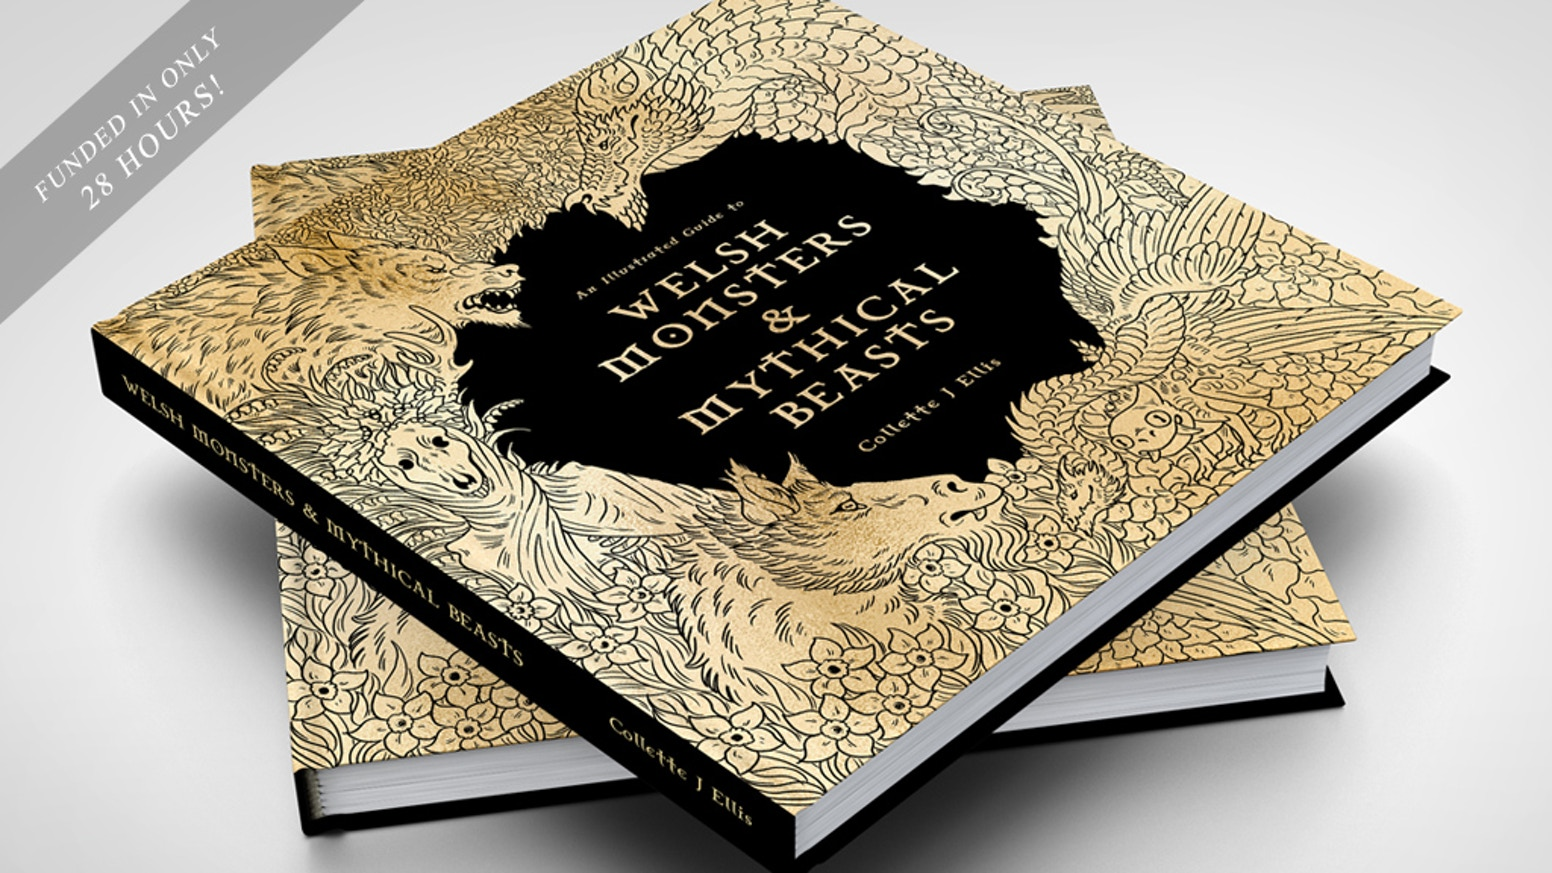 Enter A Realm Of Fantastic Beasts Legends With This Colourful Illustrated Compendium Exploring The Mythical